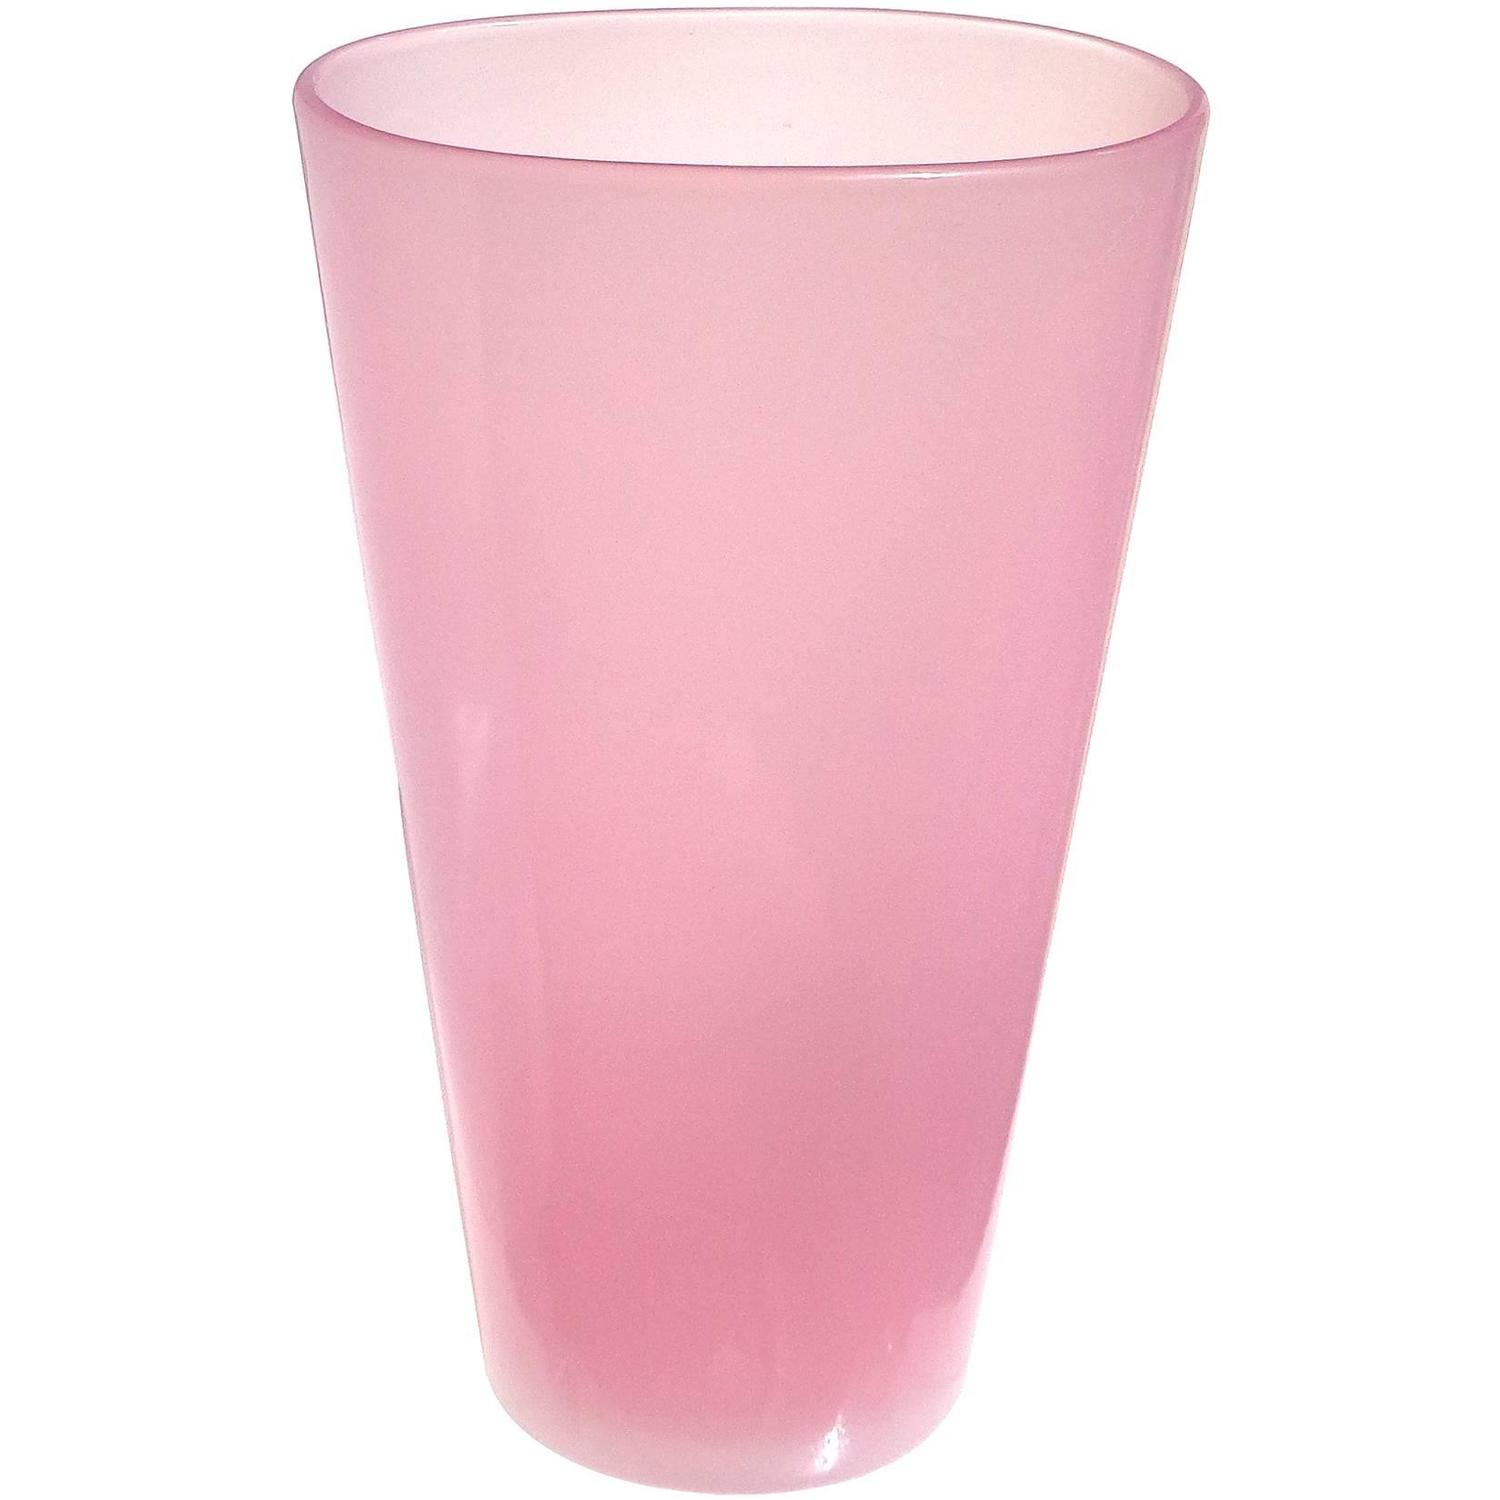 Pink Glass Vases 285 For Sale On 1stdibs